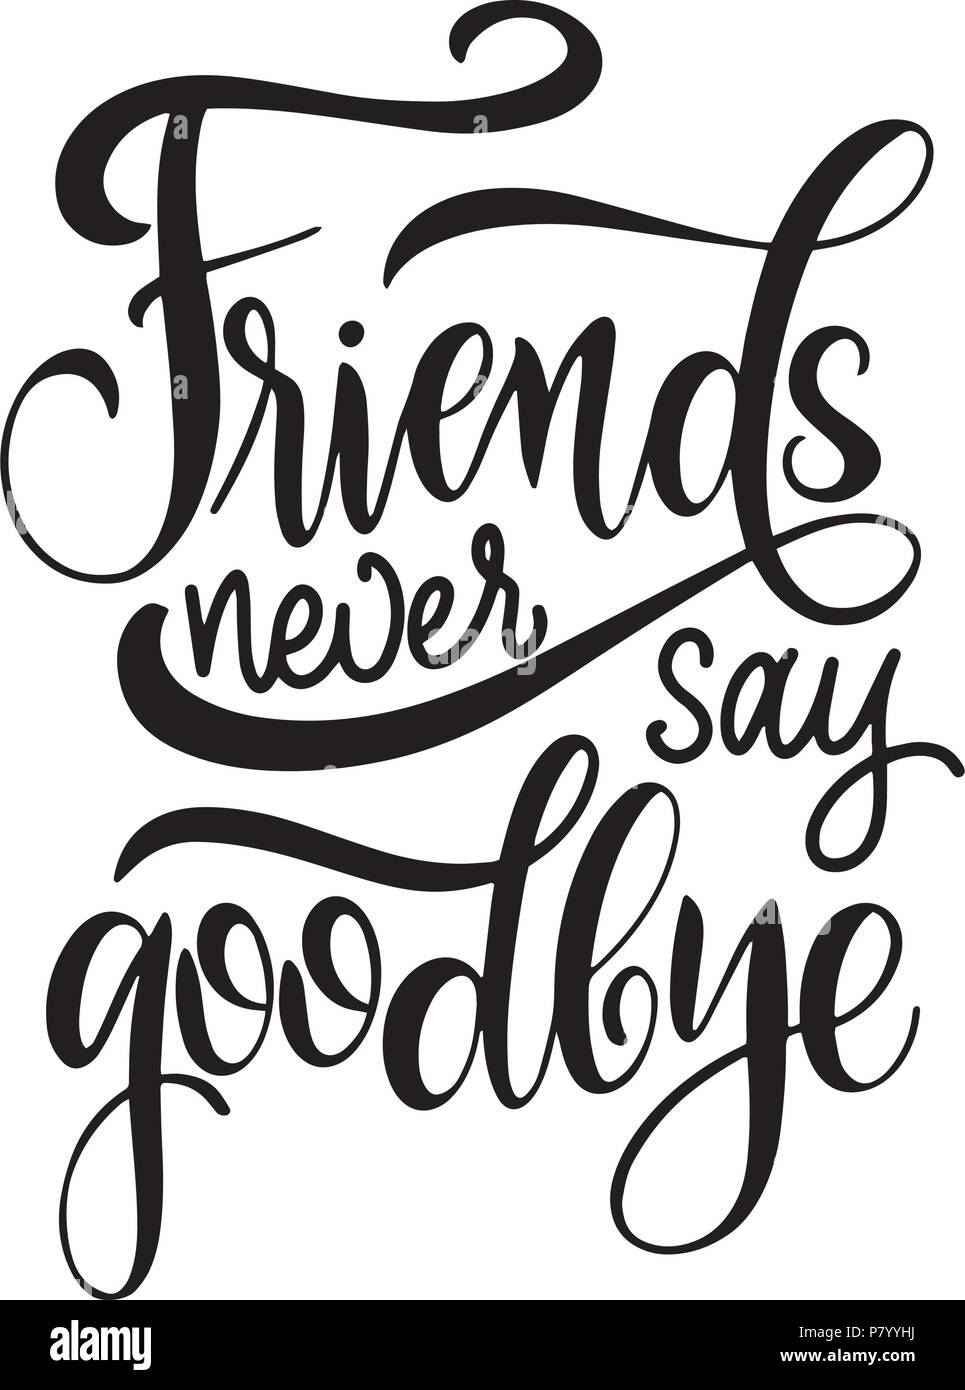 ddebc861424 Friendship day hand drawn lettering. Friends never say goodbye ...